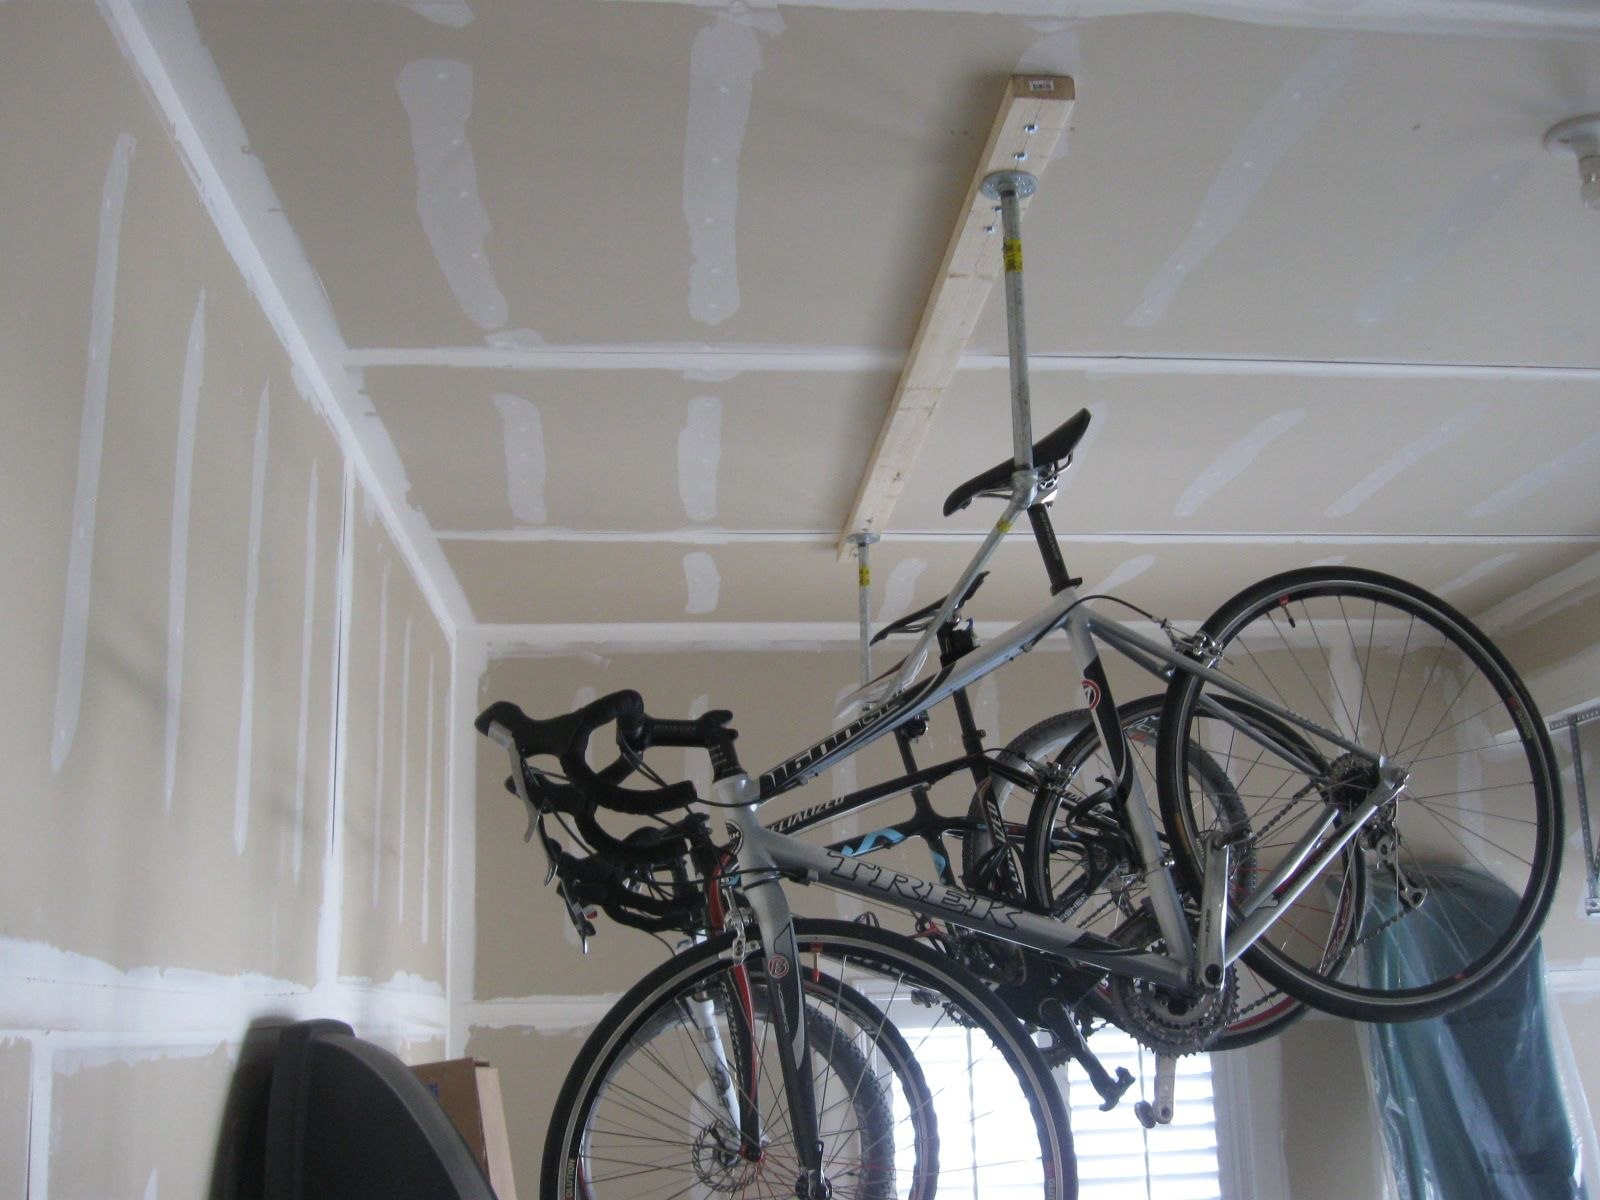 Diy Homemade Garage Bike Rack Modern Garage Design Bike Rack Garage Diy Bike Rack Garage Bike